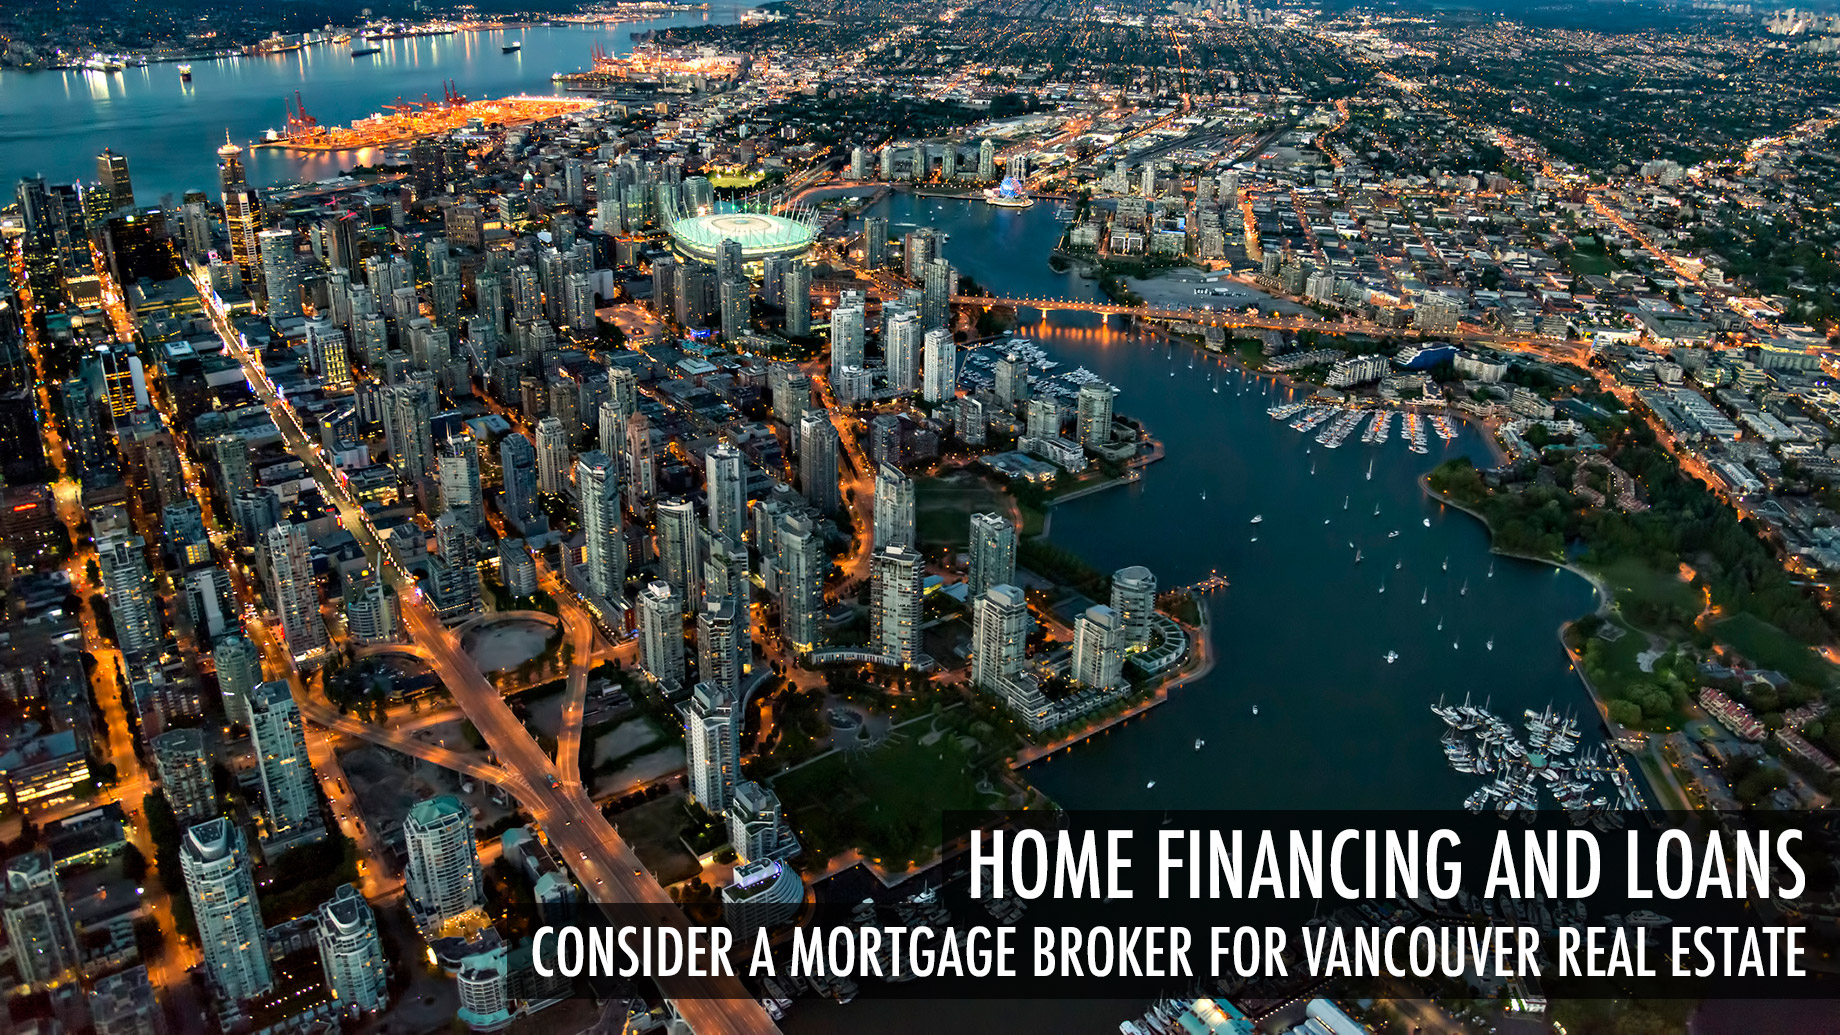 Home Financing and Loans - Consider a Mortgage Broker for Vancouver Real Estate